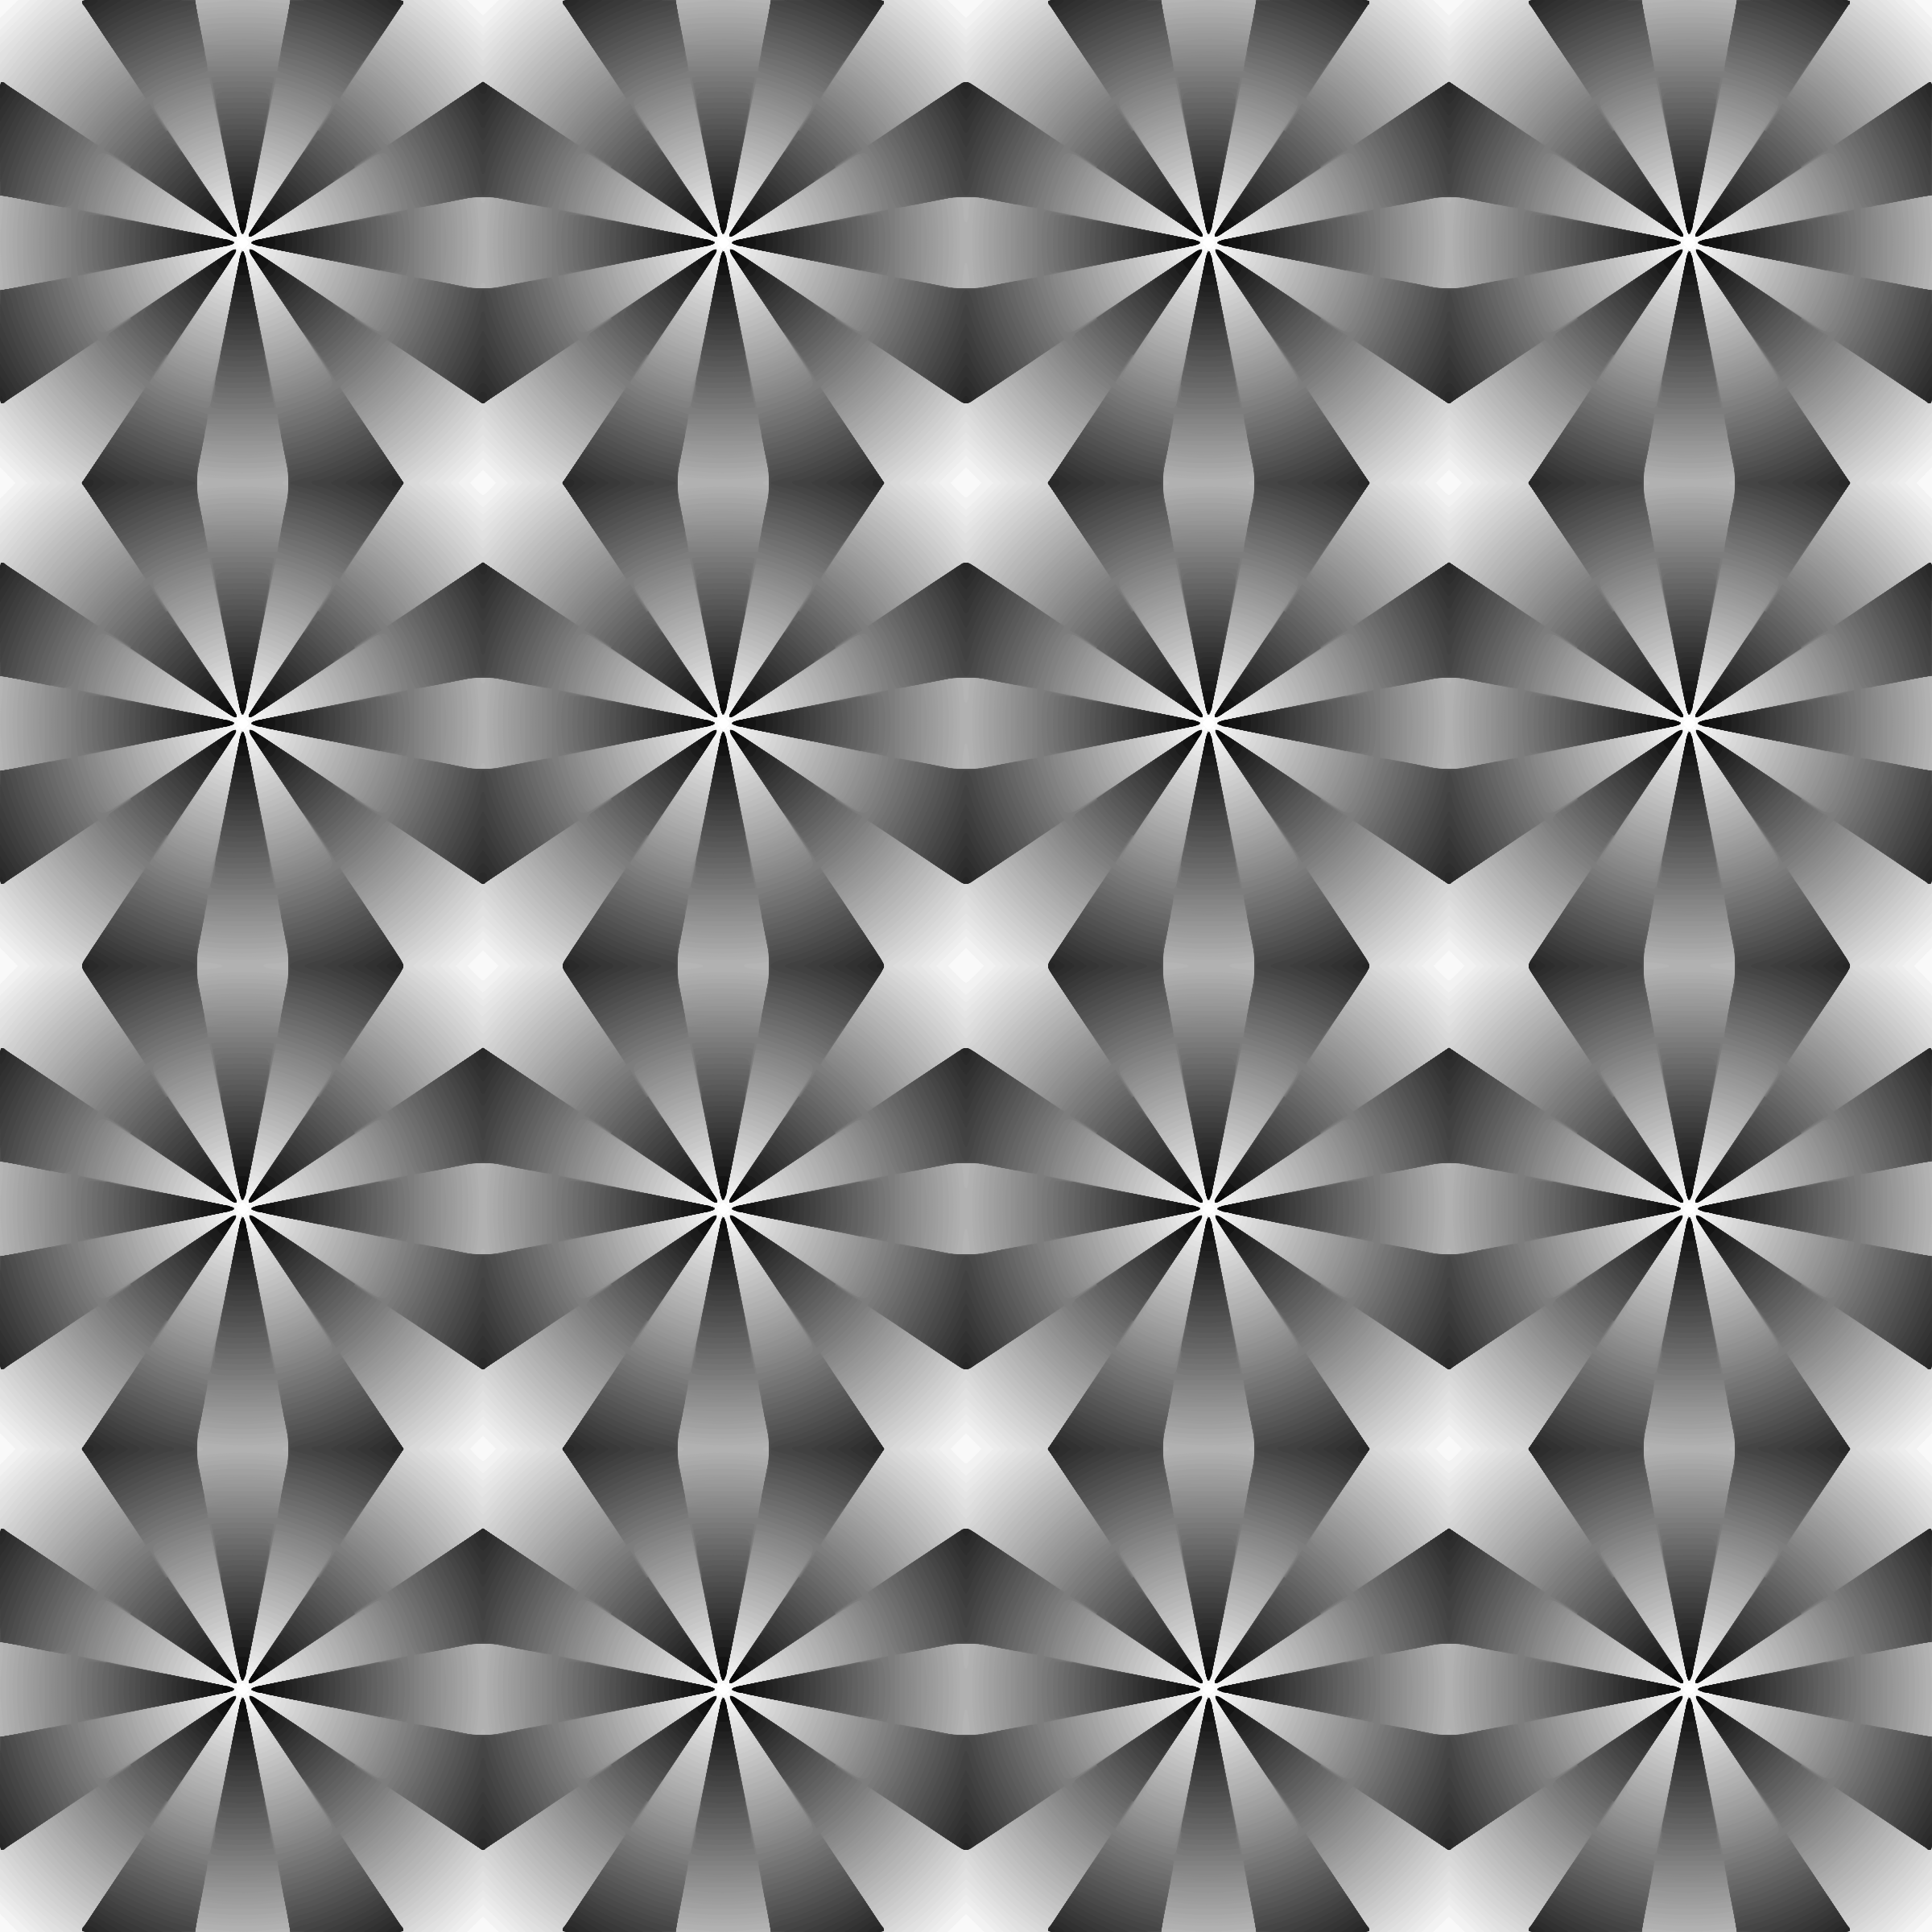 Background pattern 8 (greyscale) by Firkin